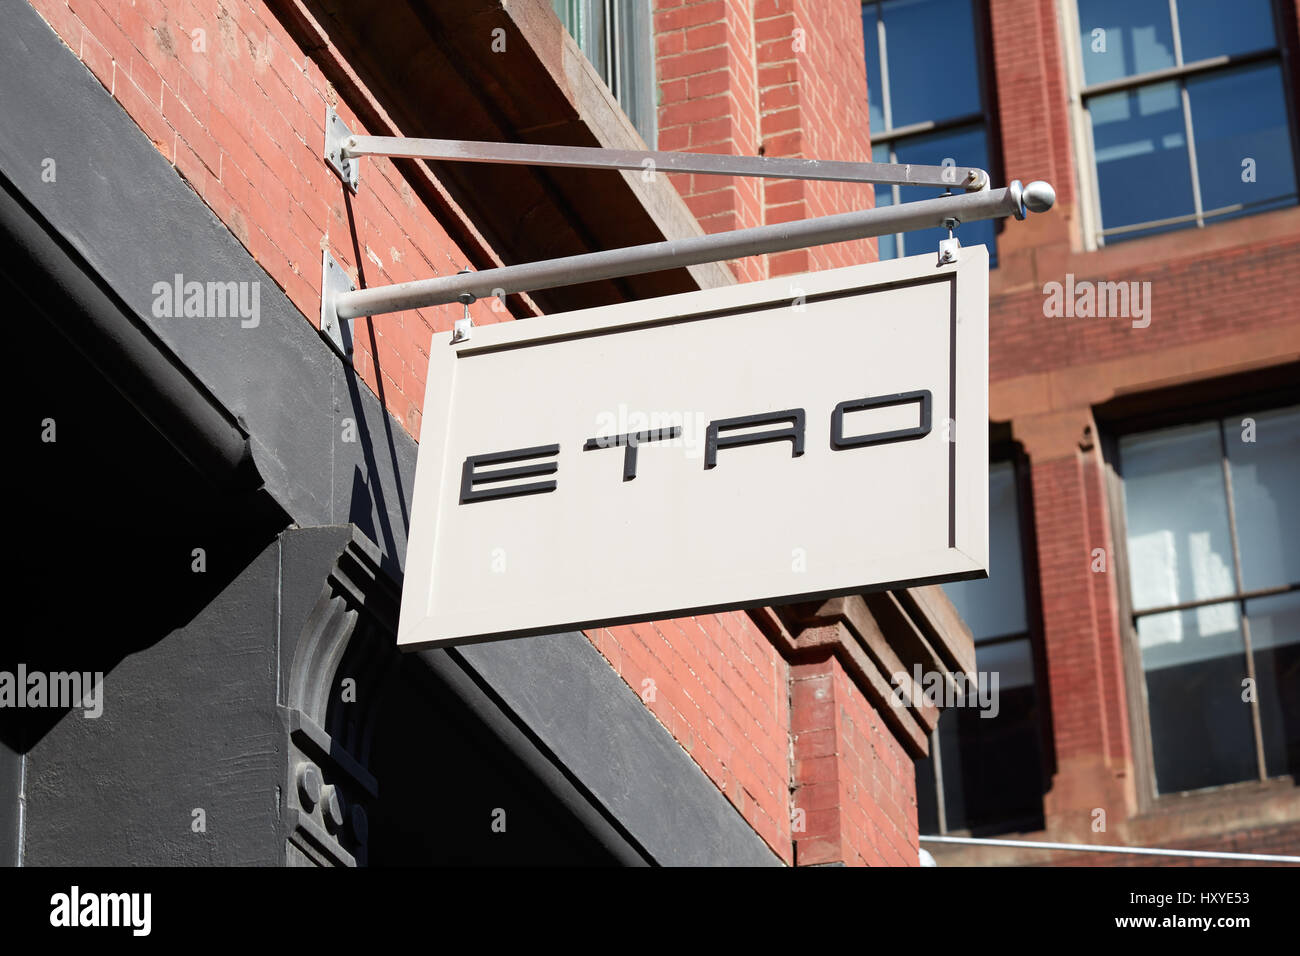 Etro Kissen Etro Stockfotos Etro Bilder Alamy